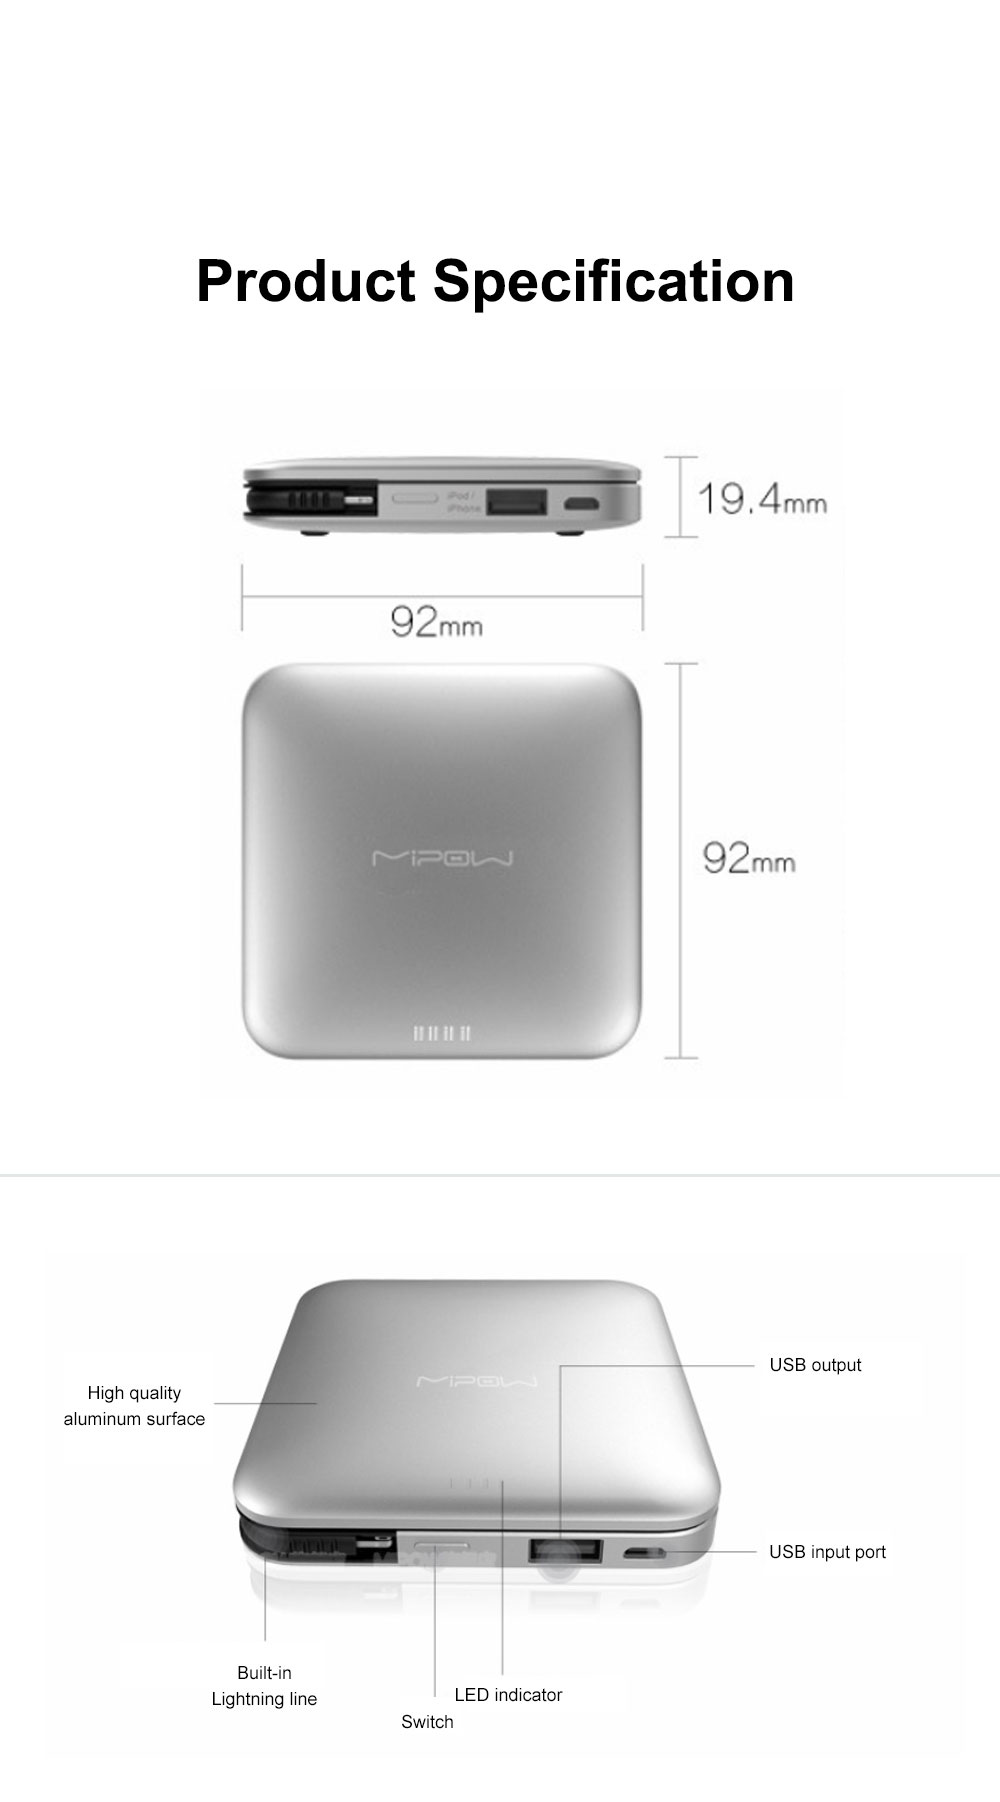 Mipow Portable Mobile Power 9000 Mah Large Capacity Mobile Phone Ultra-thin Charging Treasure Comes With Line specially for iPod iPhone iPad 8